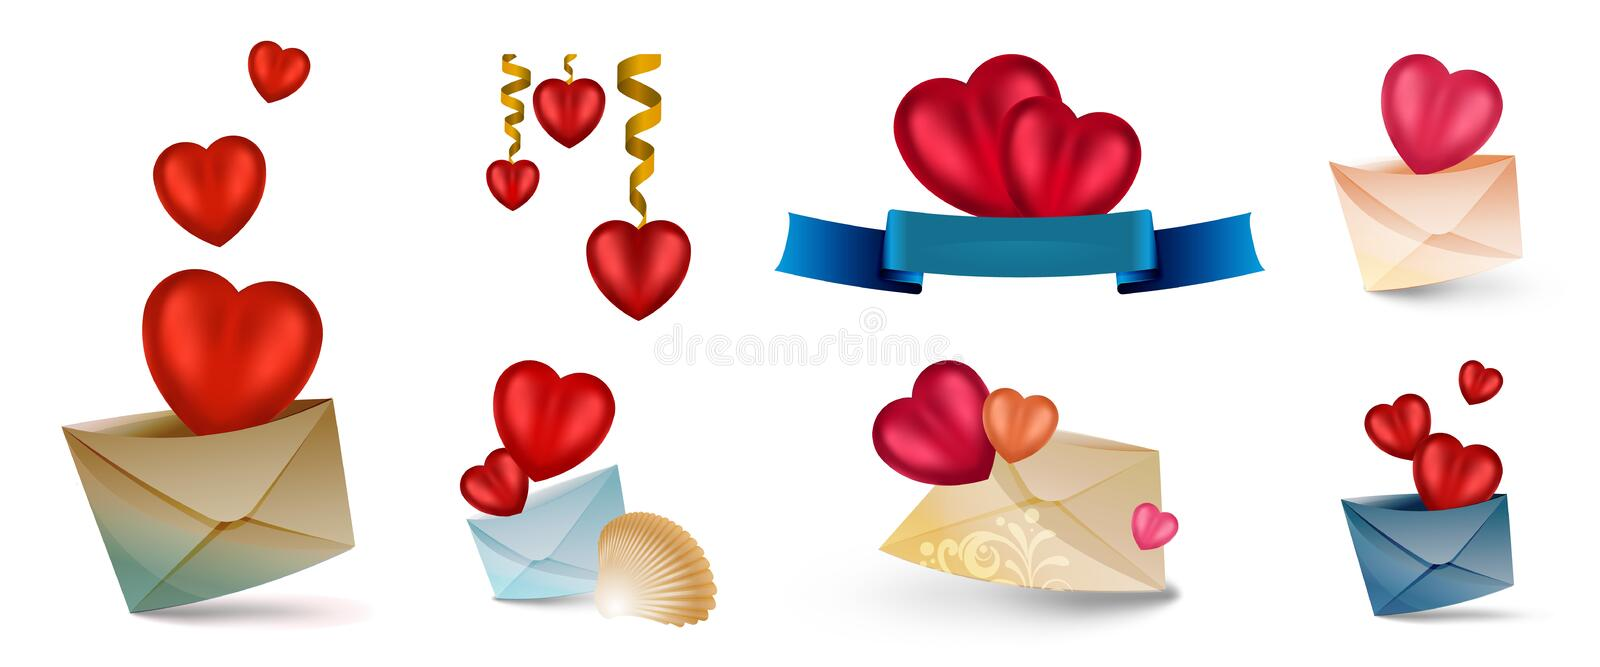 Set of vector icons with hearts isolated on white. Contains Mesh elements. Set of vector cartoon icons with hearts isolated on white. Contains Mesh elements stock illustration